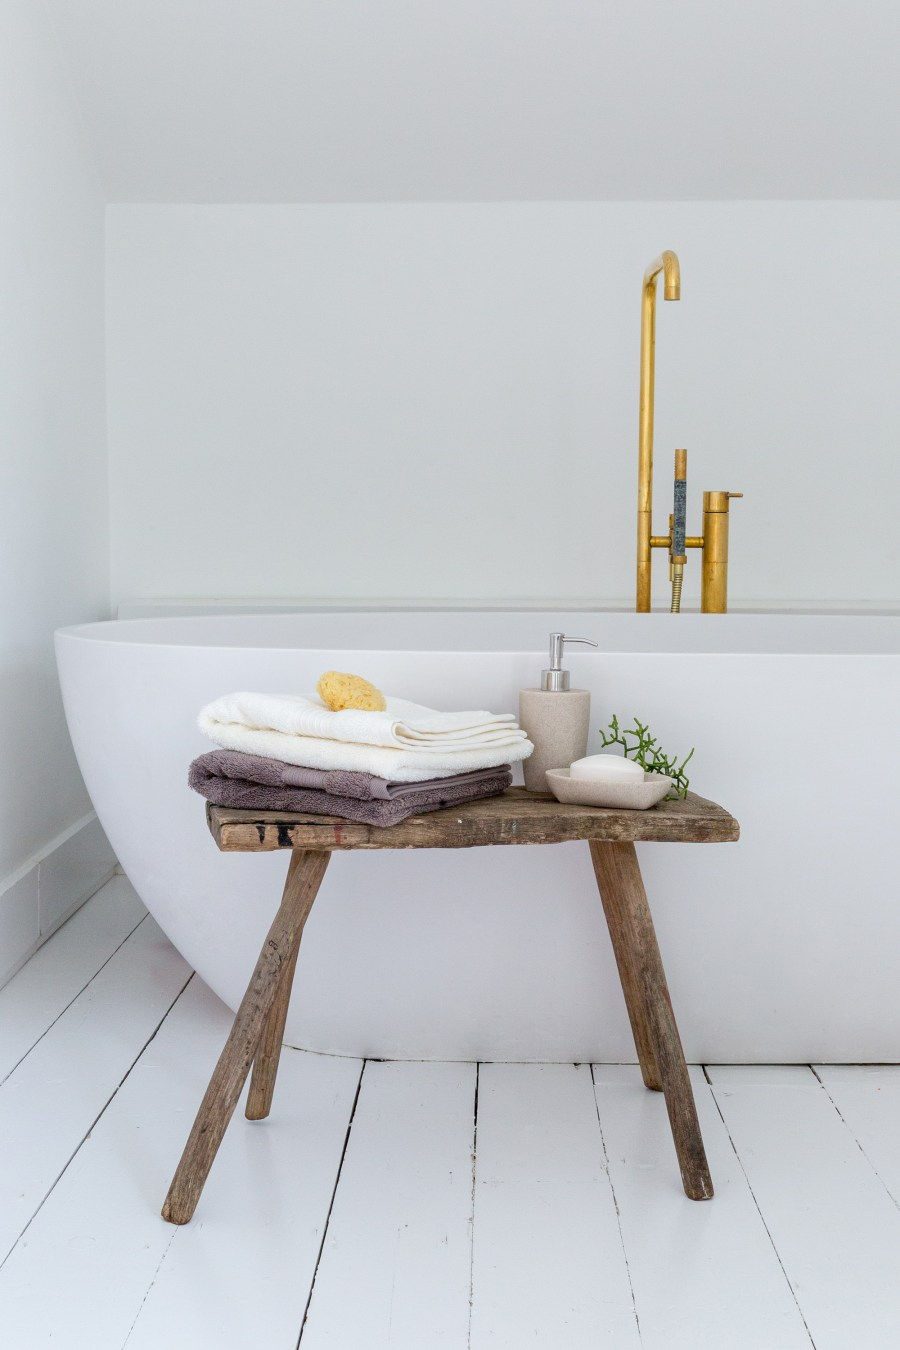 Soak&Sleep - Ultimate Supima Cotton hand towels £12 each, Natural Resin dispenser £6, Soap Dish £5